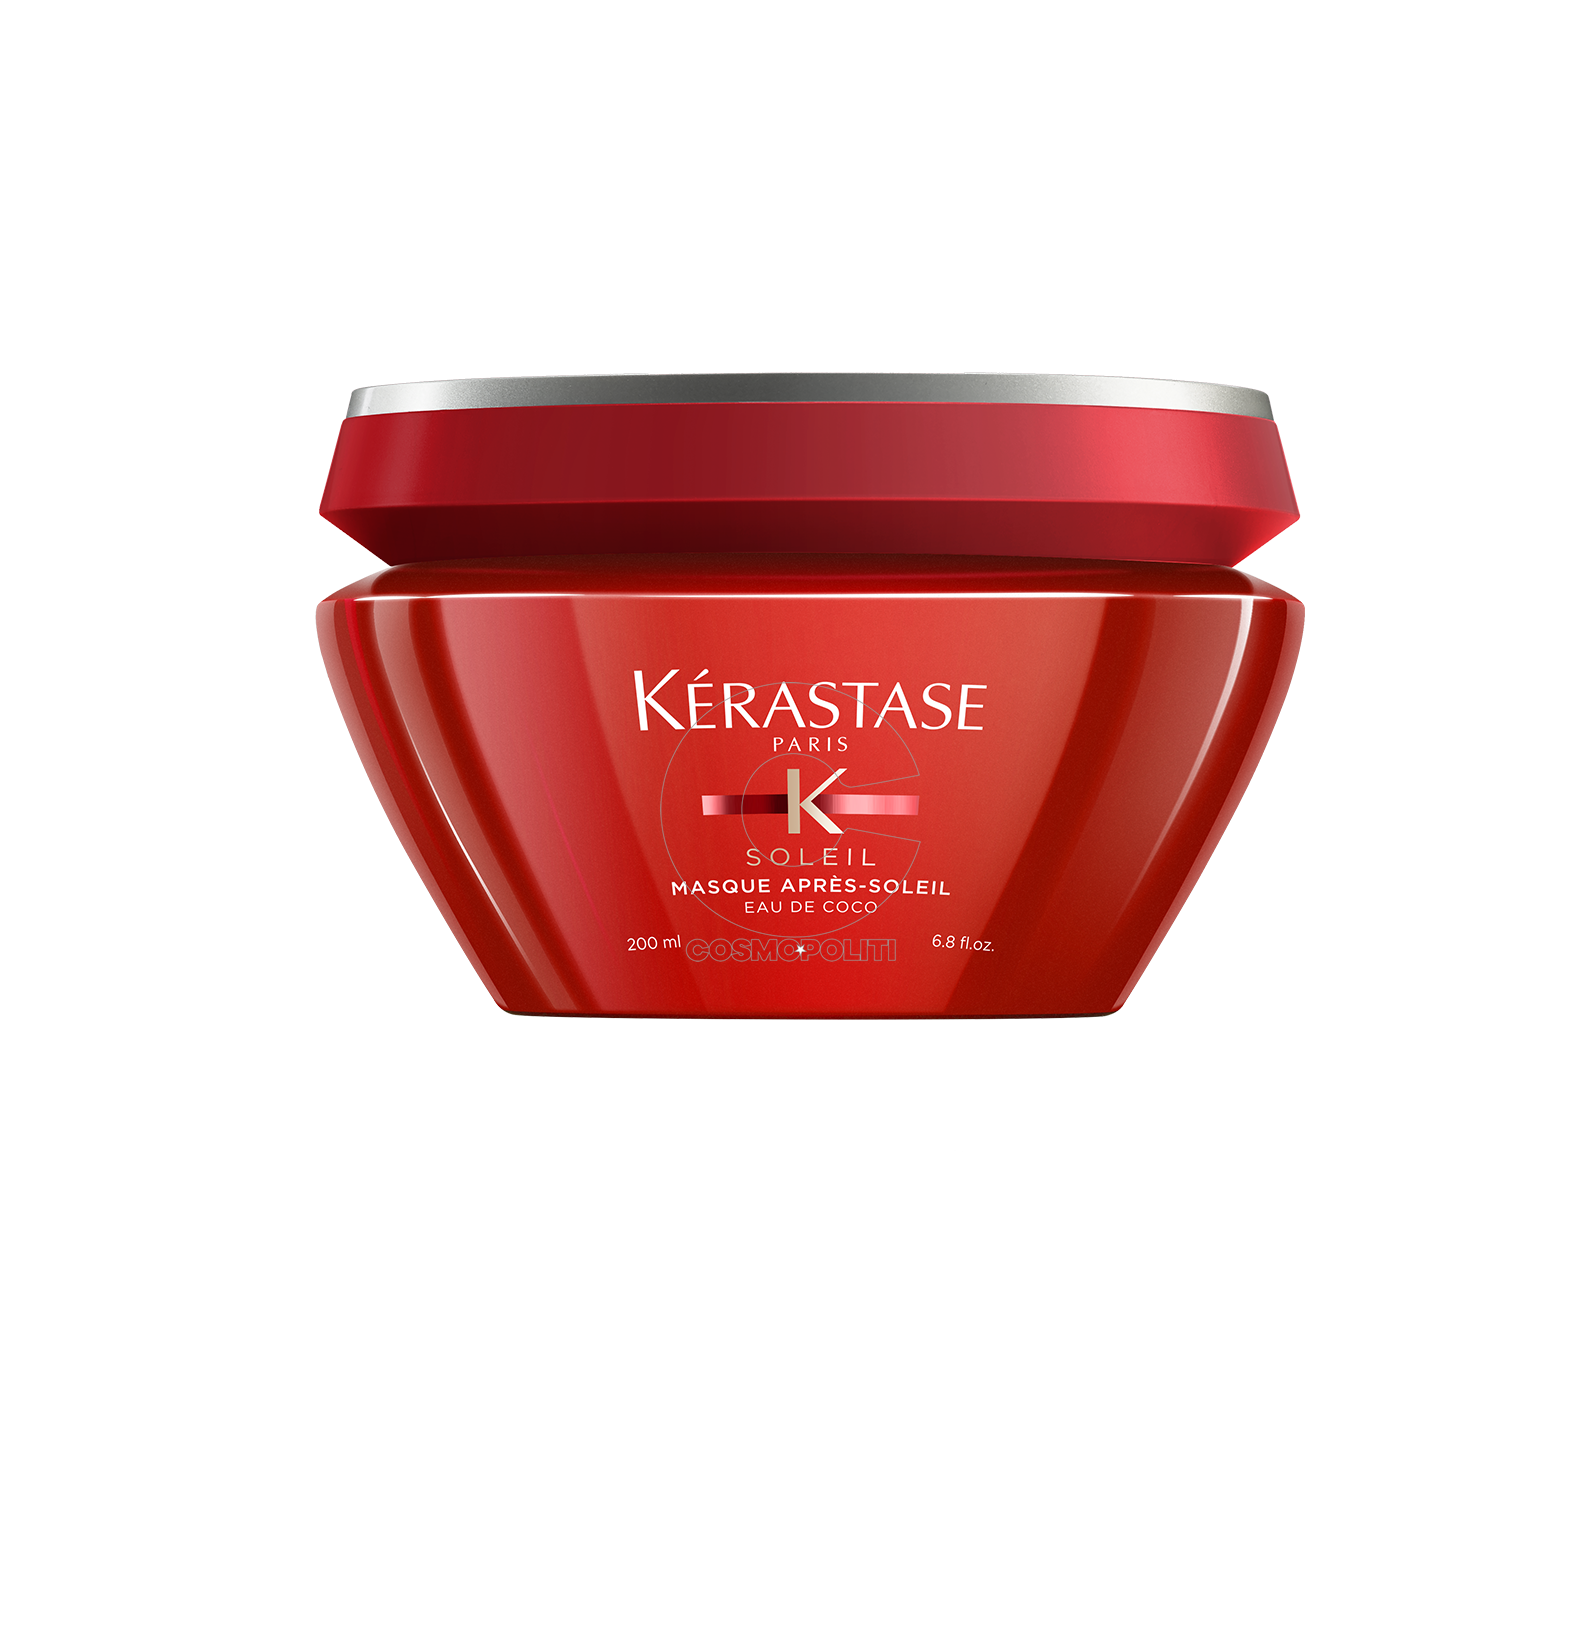 KERASTASE - Masque - Pot 200ml